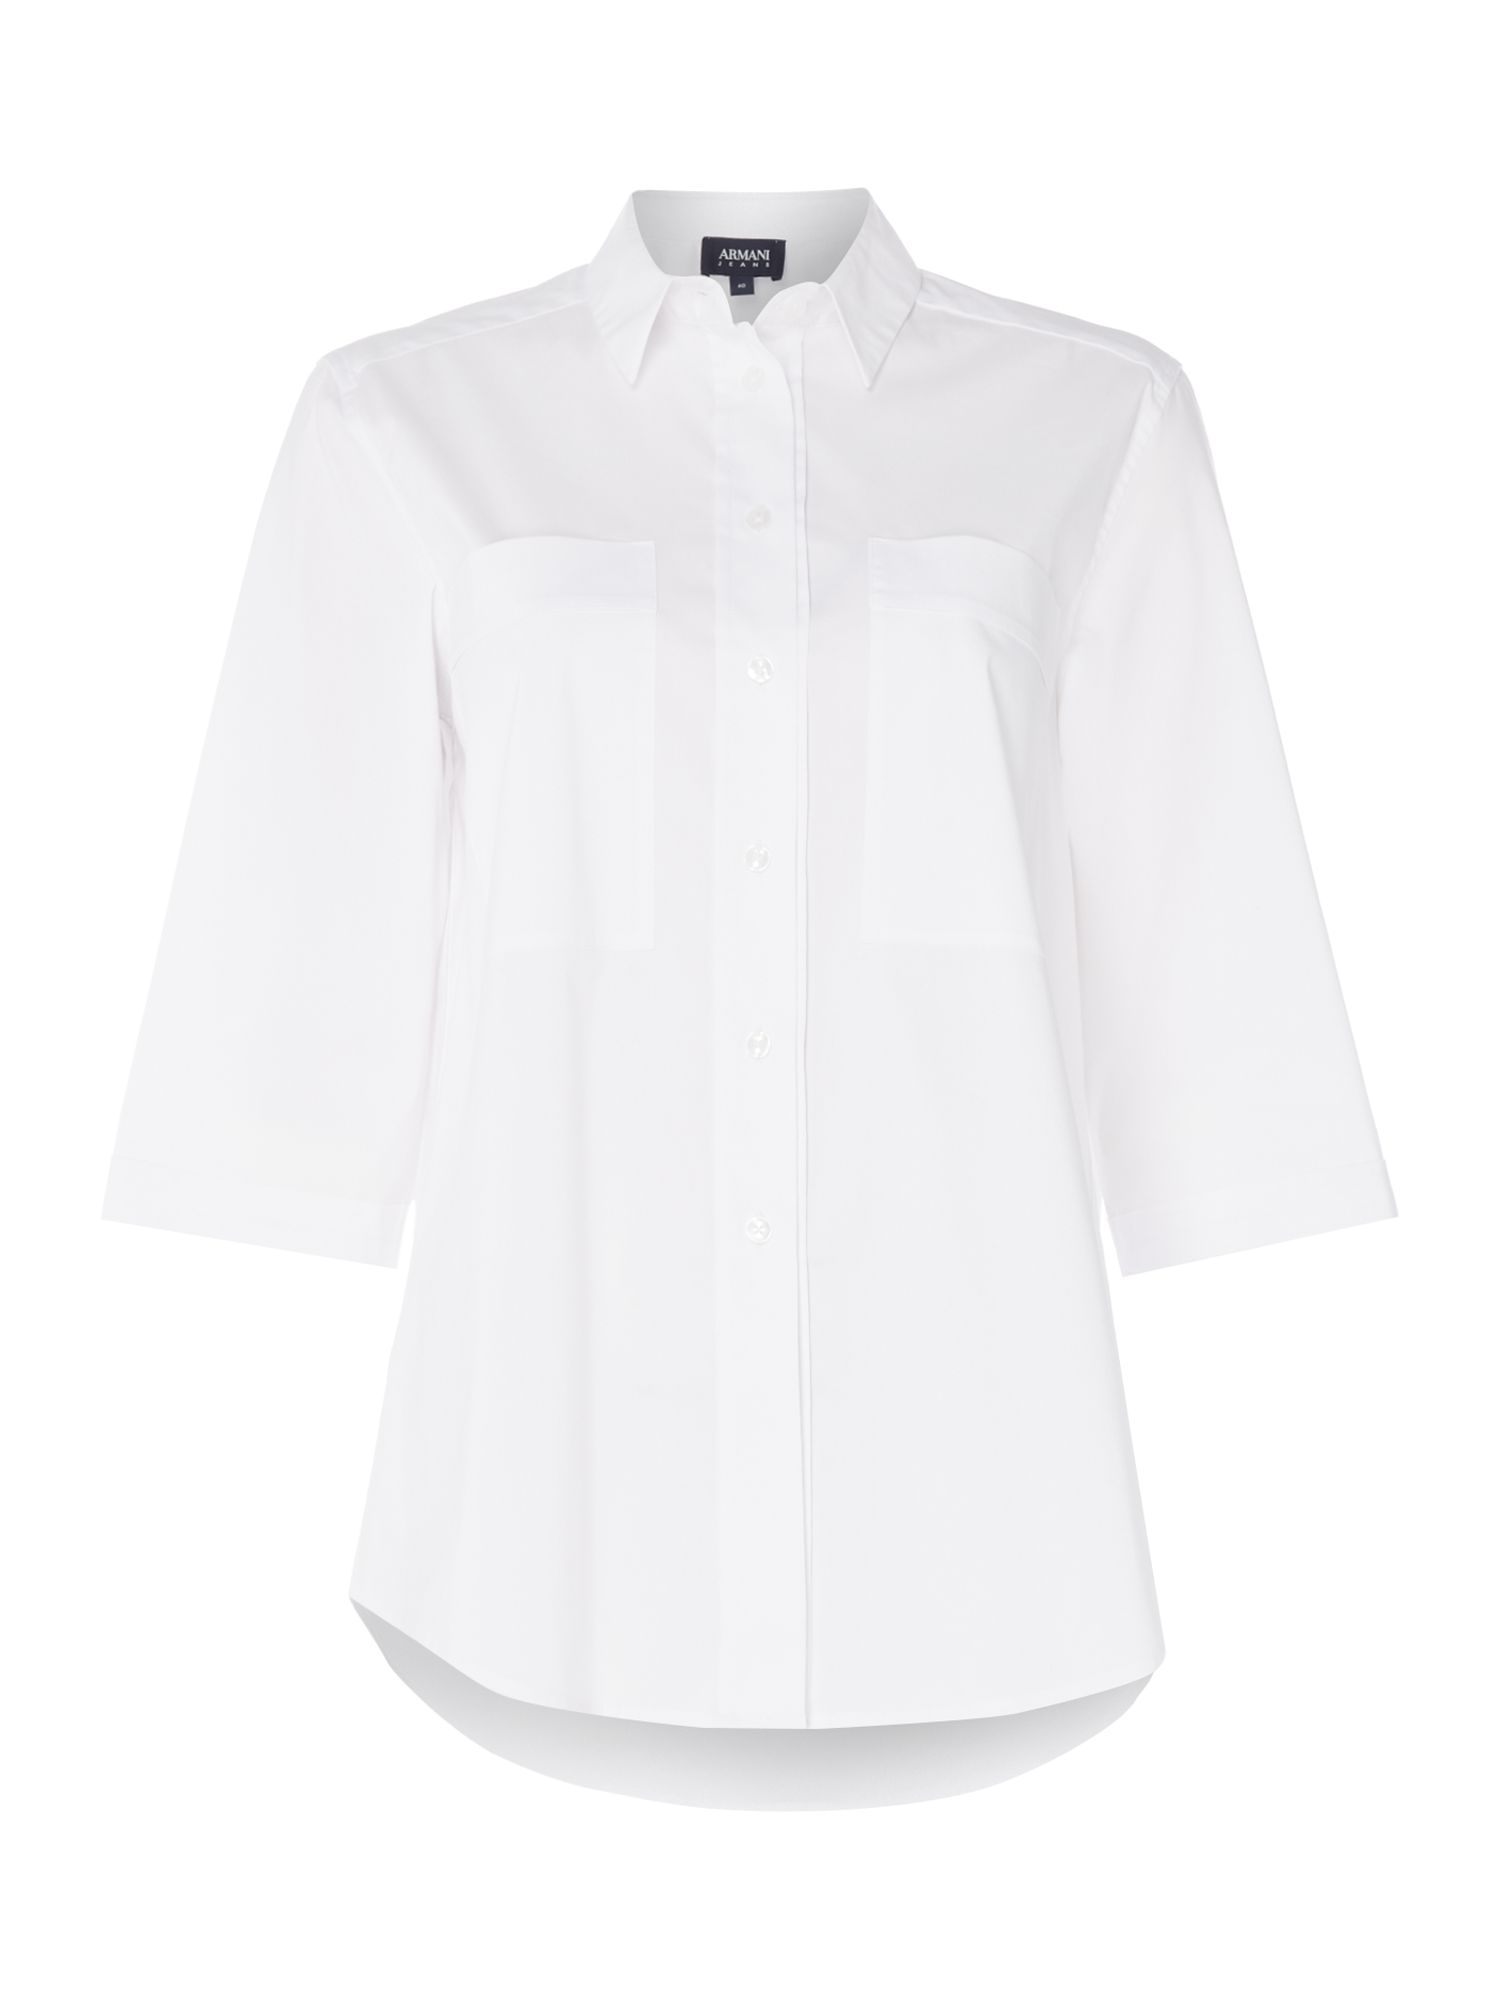 Armani Jeans 2 pocket shirt in 1100 white White